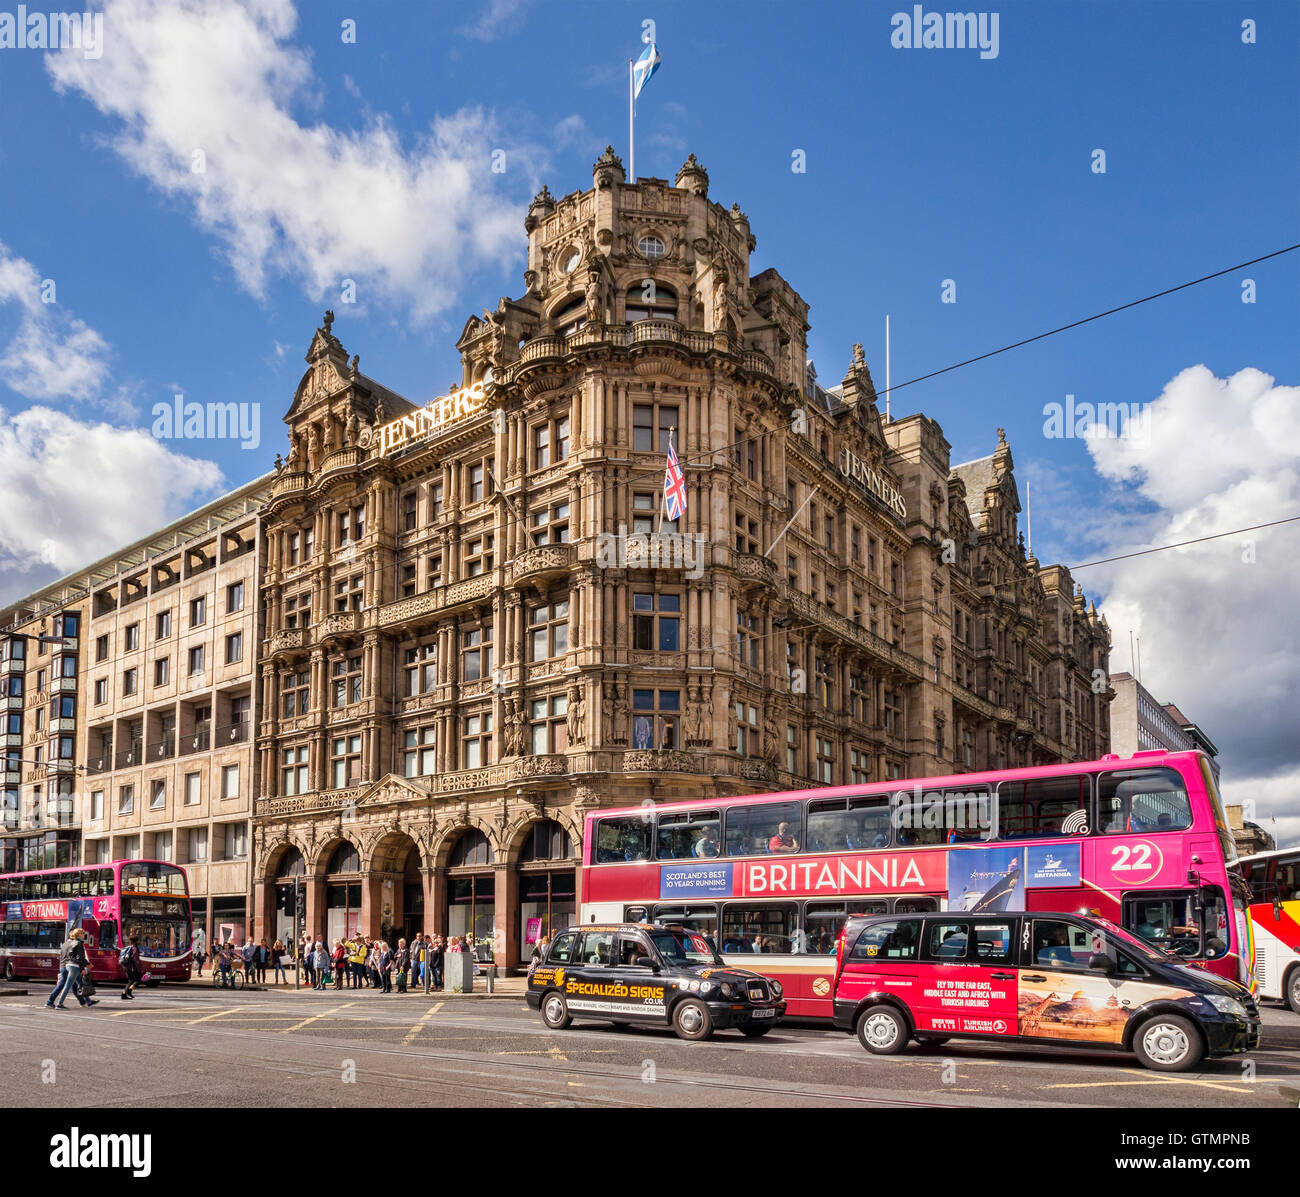 Busy street corner in Princes Street, Edinburgh, with Jenners Department Store, buses,taxis and people, Scotland, - Stock Image